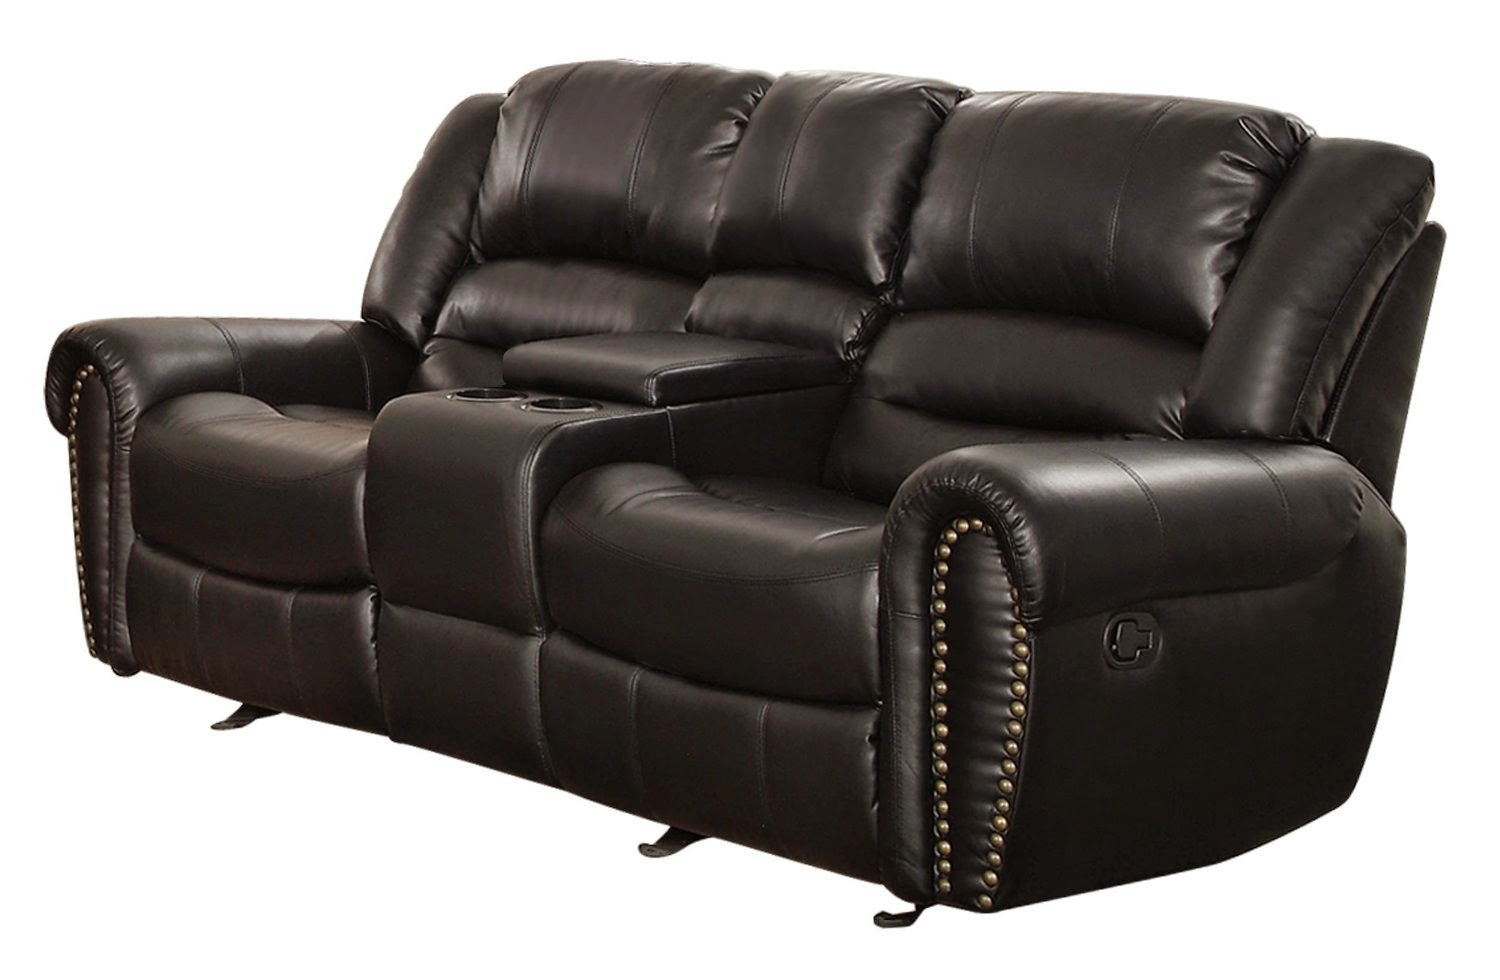 Small Sofa Recliner Leather Sofas Ashley Furniture Reclining Loveseat And Chair Sets March 2015